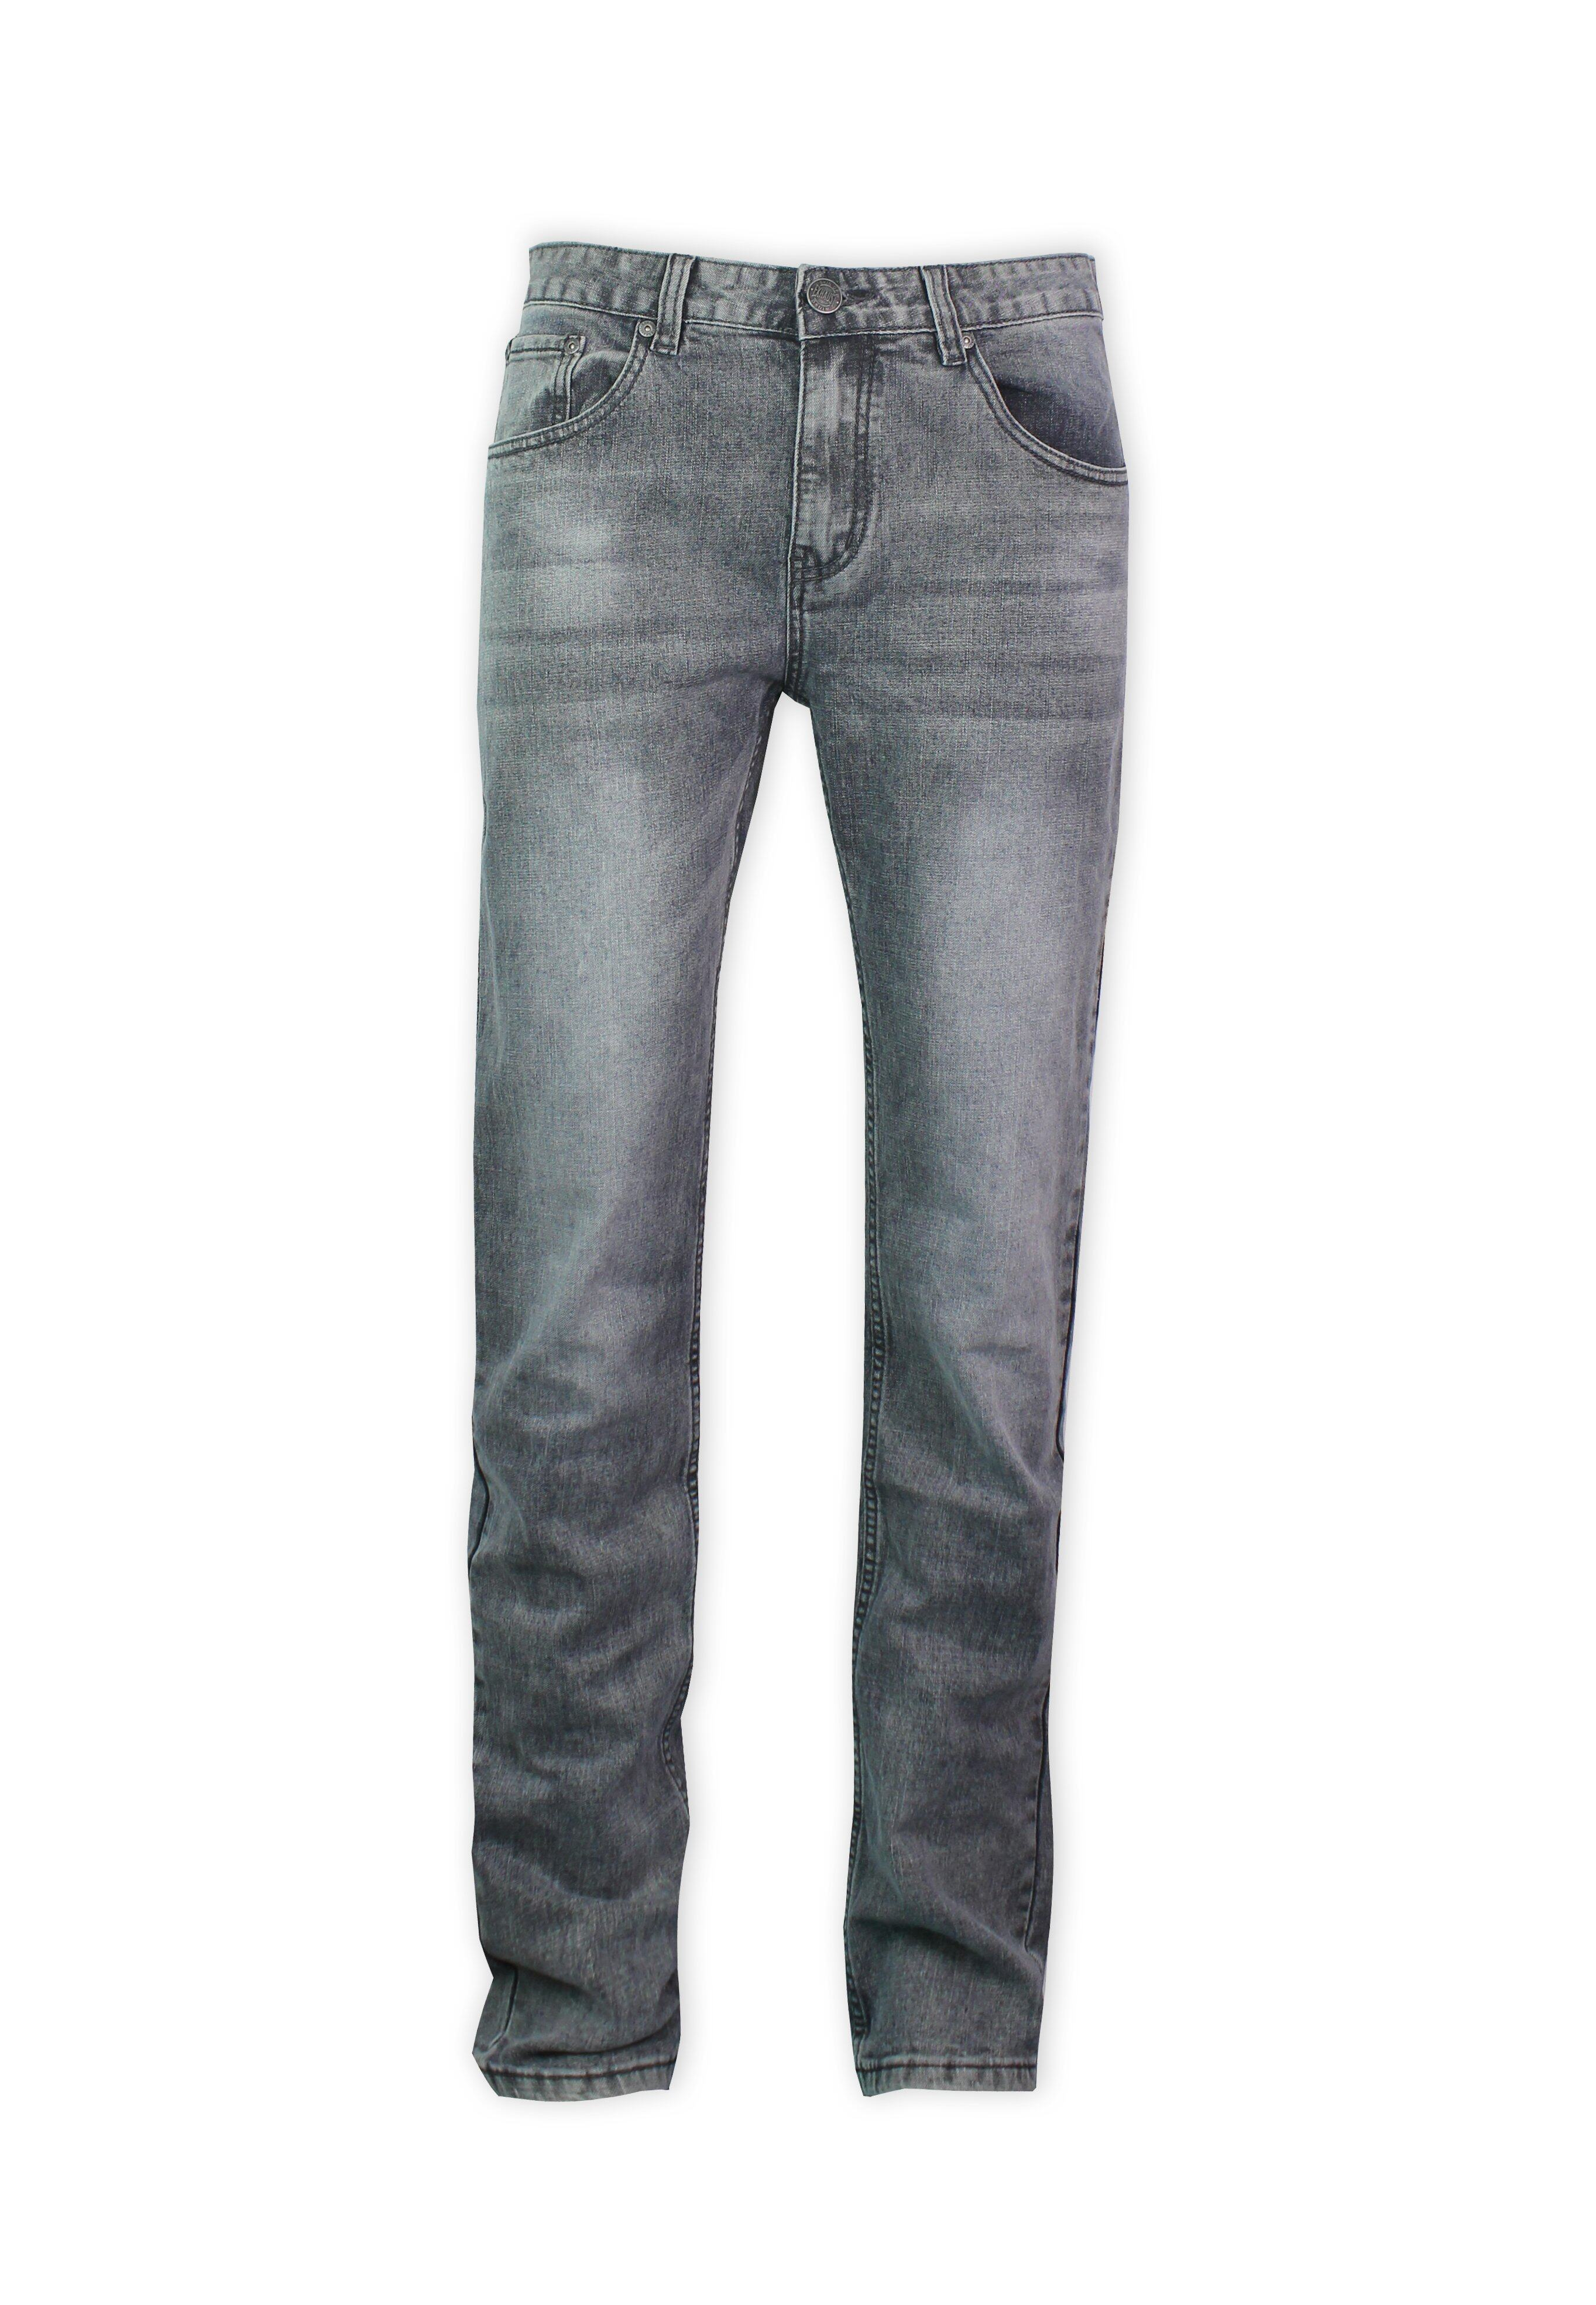 Exhaust Stretch Slim Fit Jeans 988